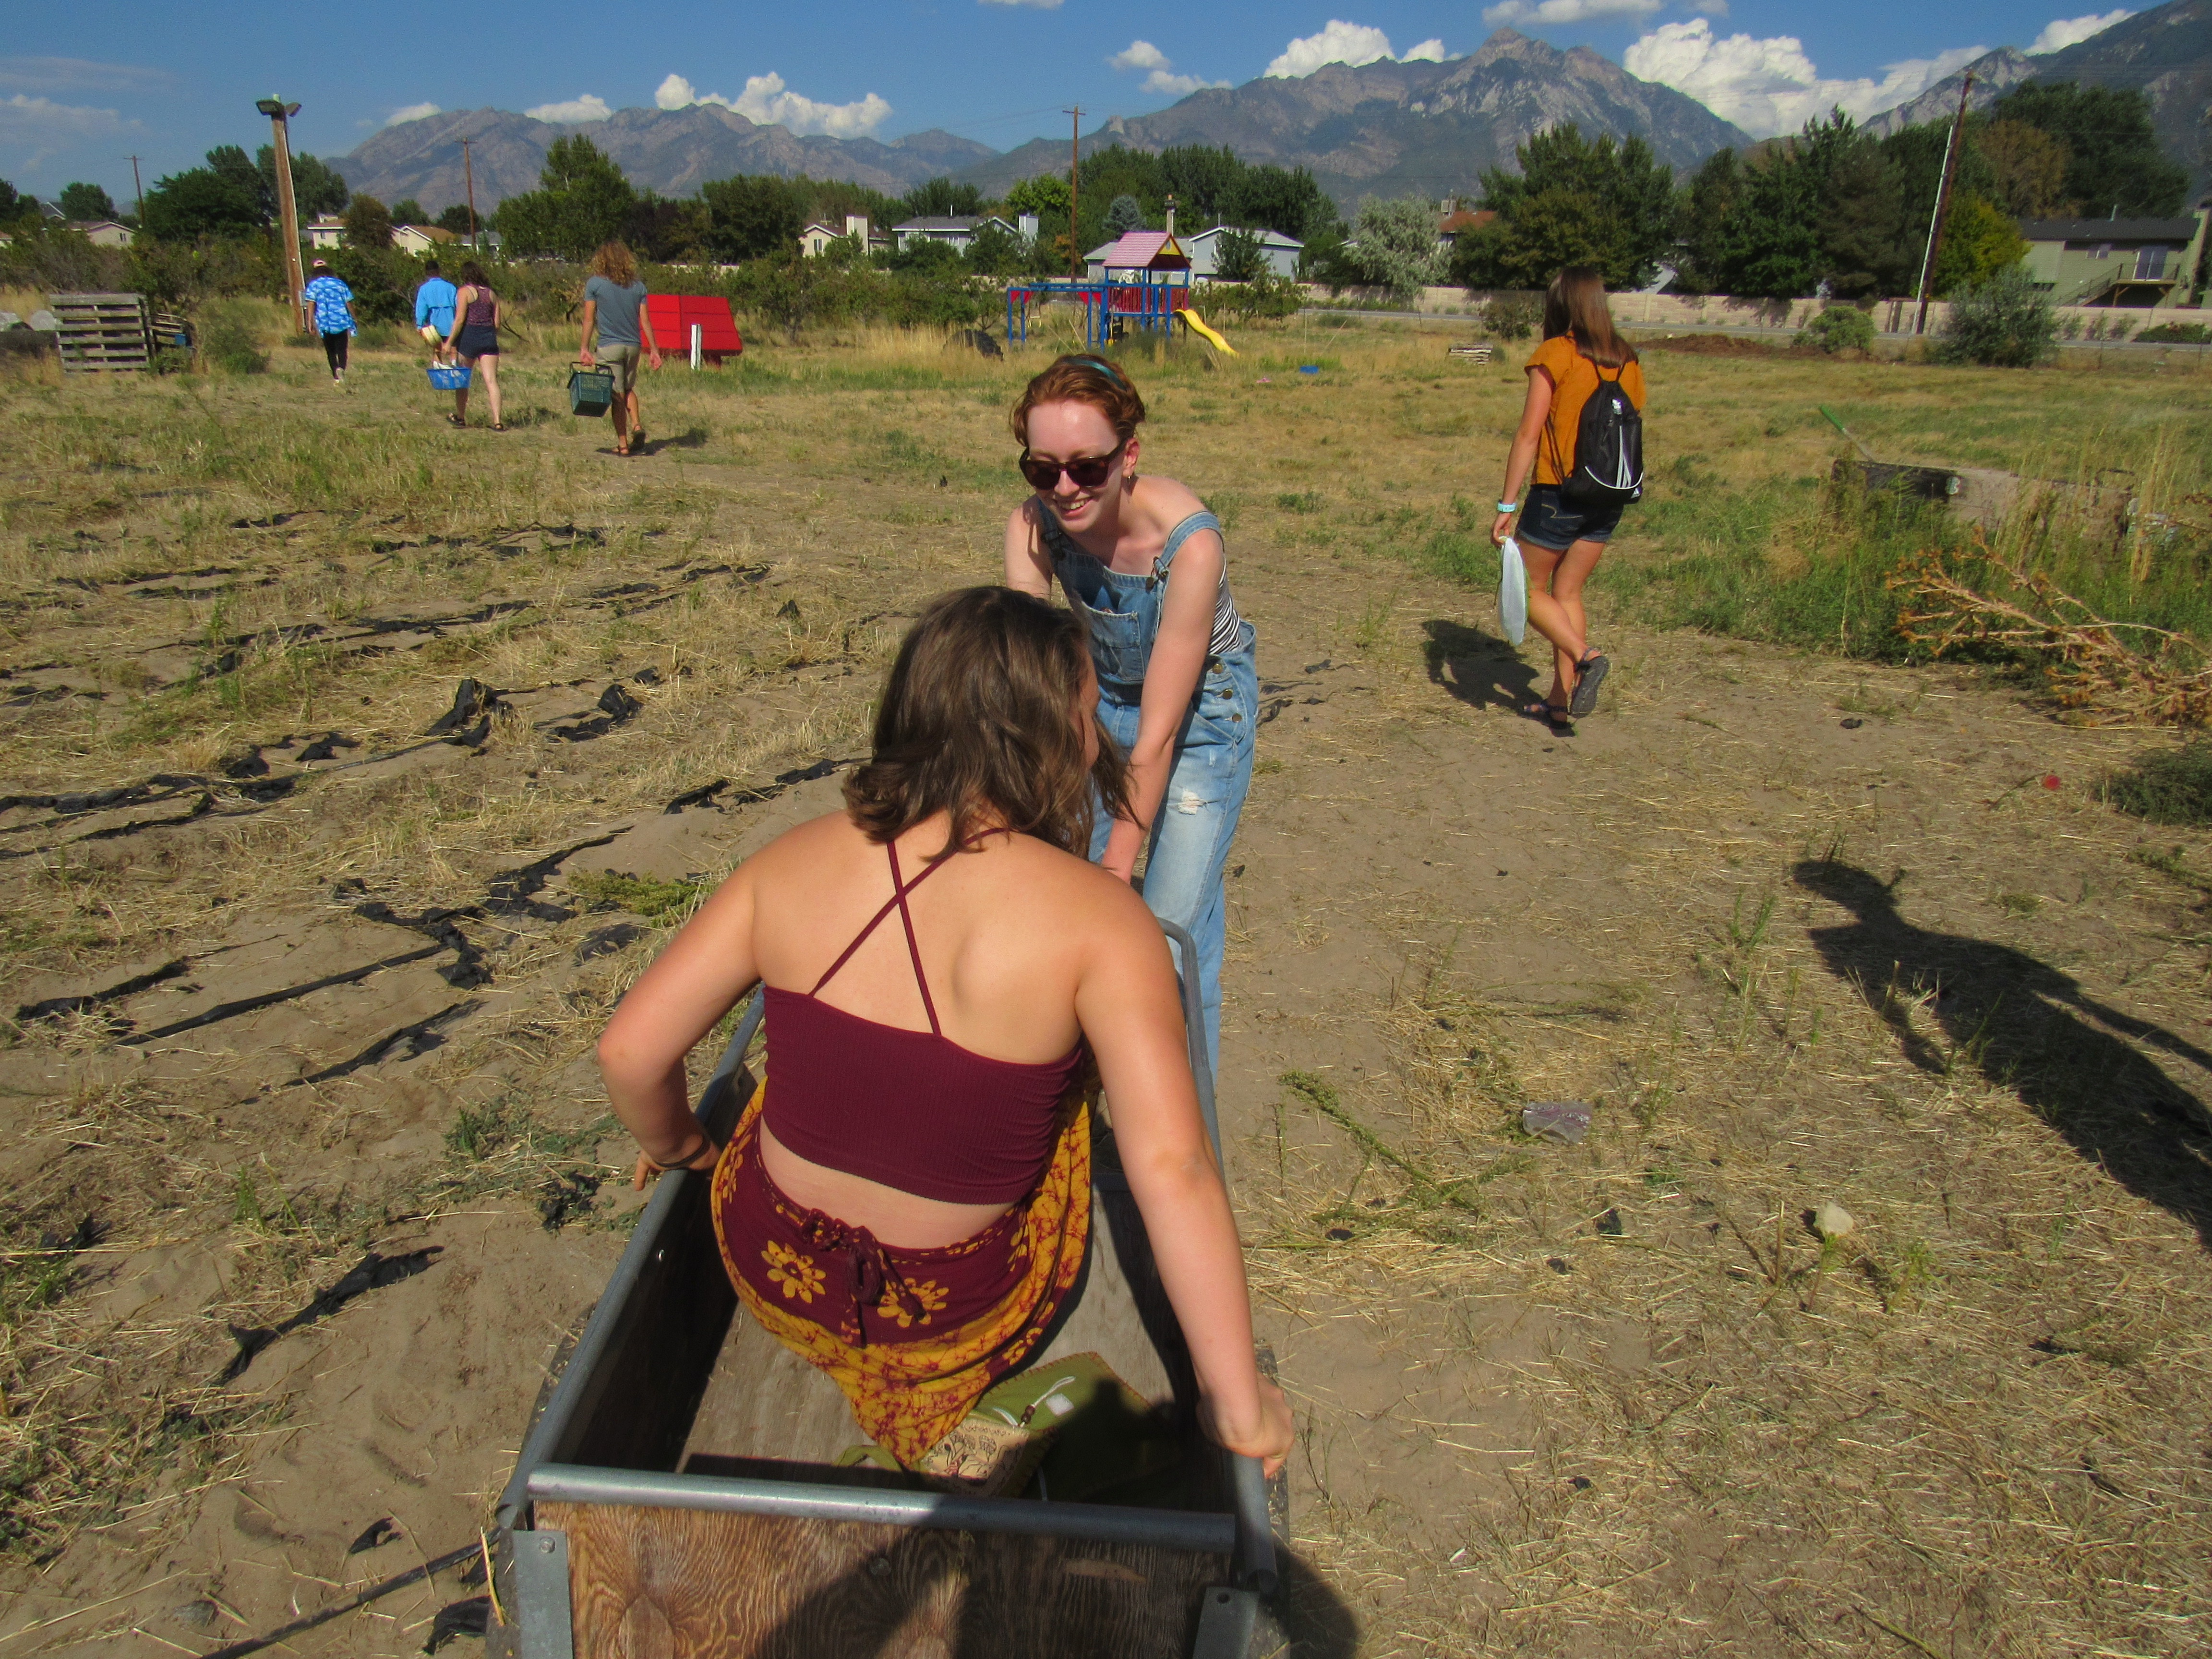 A girl with brown hair and a red shirt sits in a wheelbarrow in a field as her friend pulls her along.